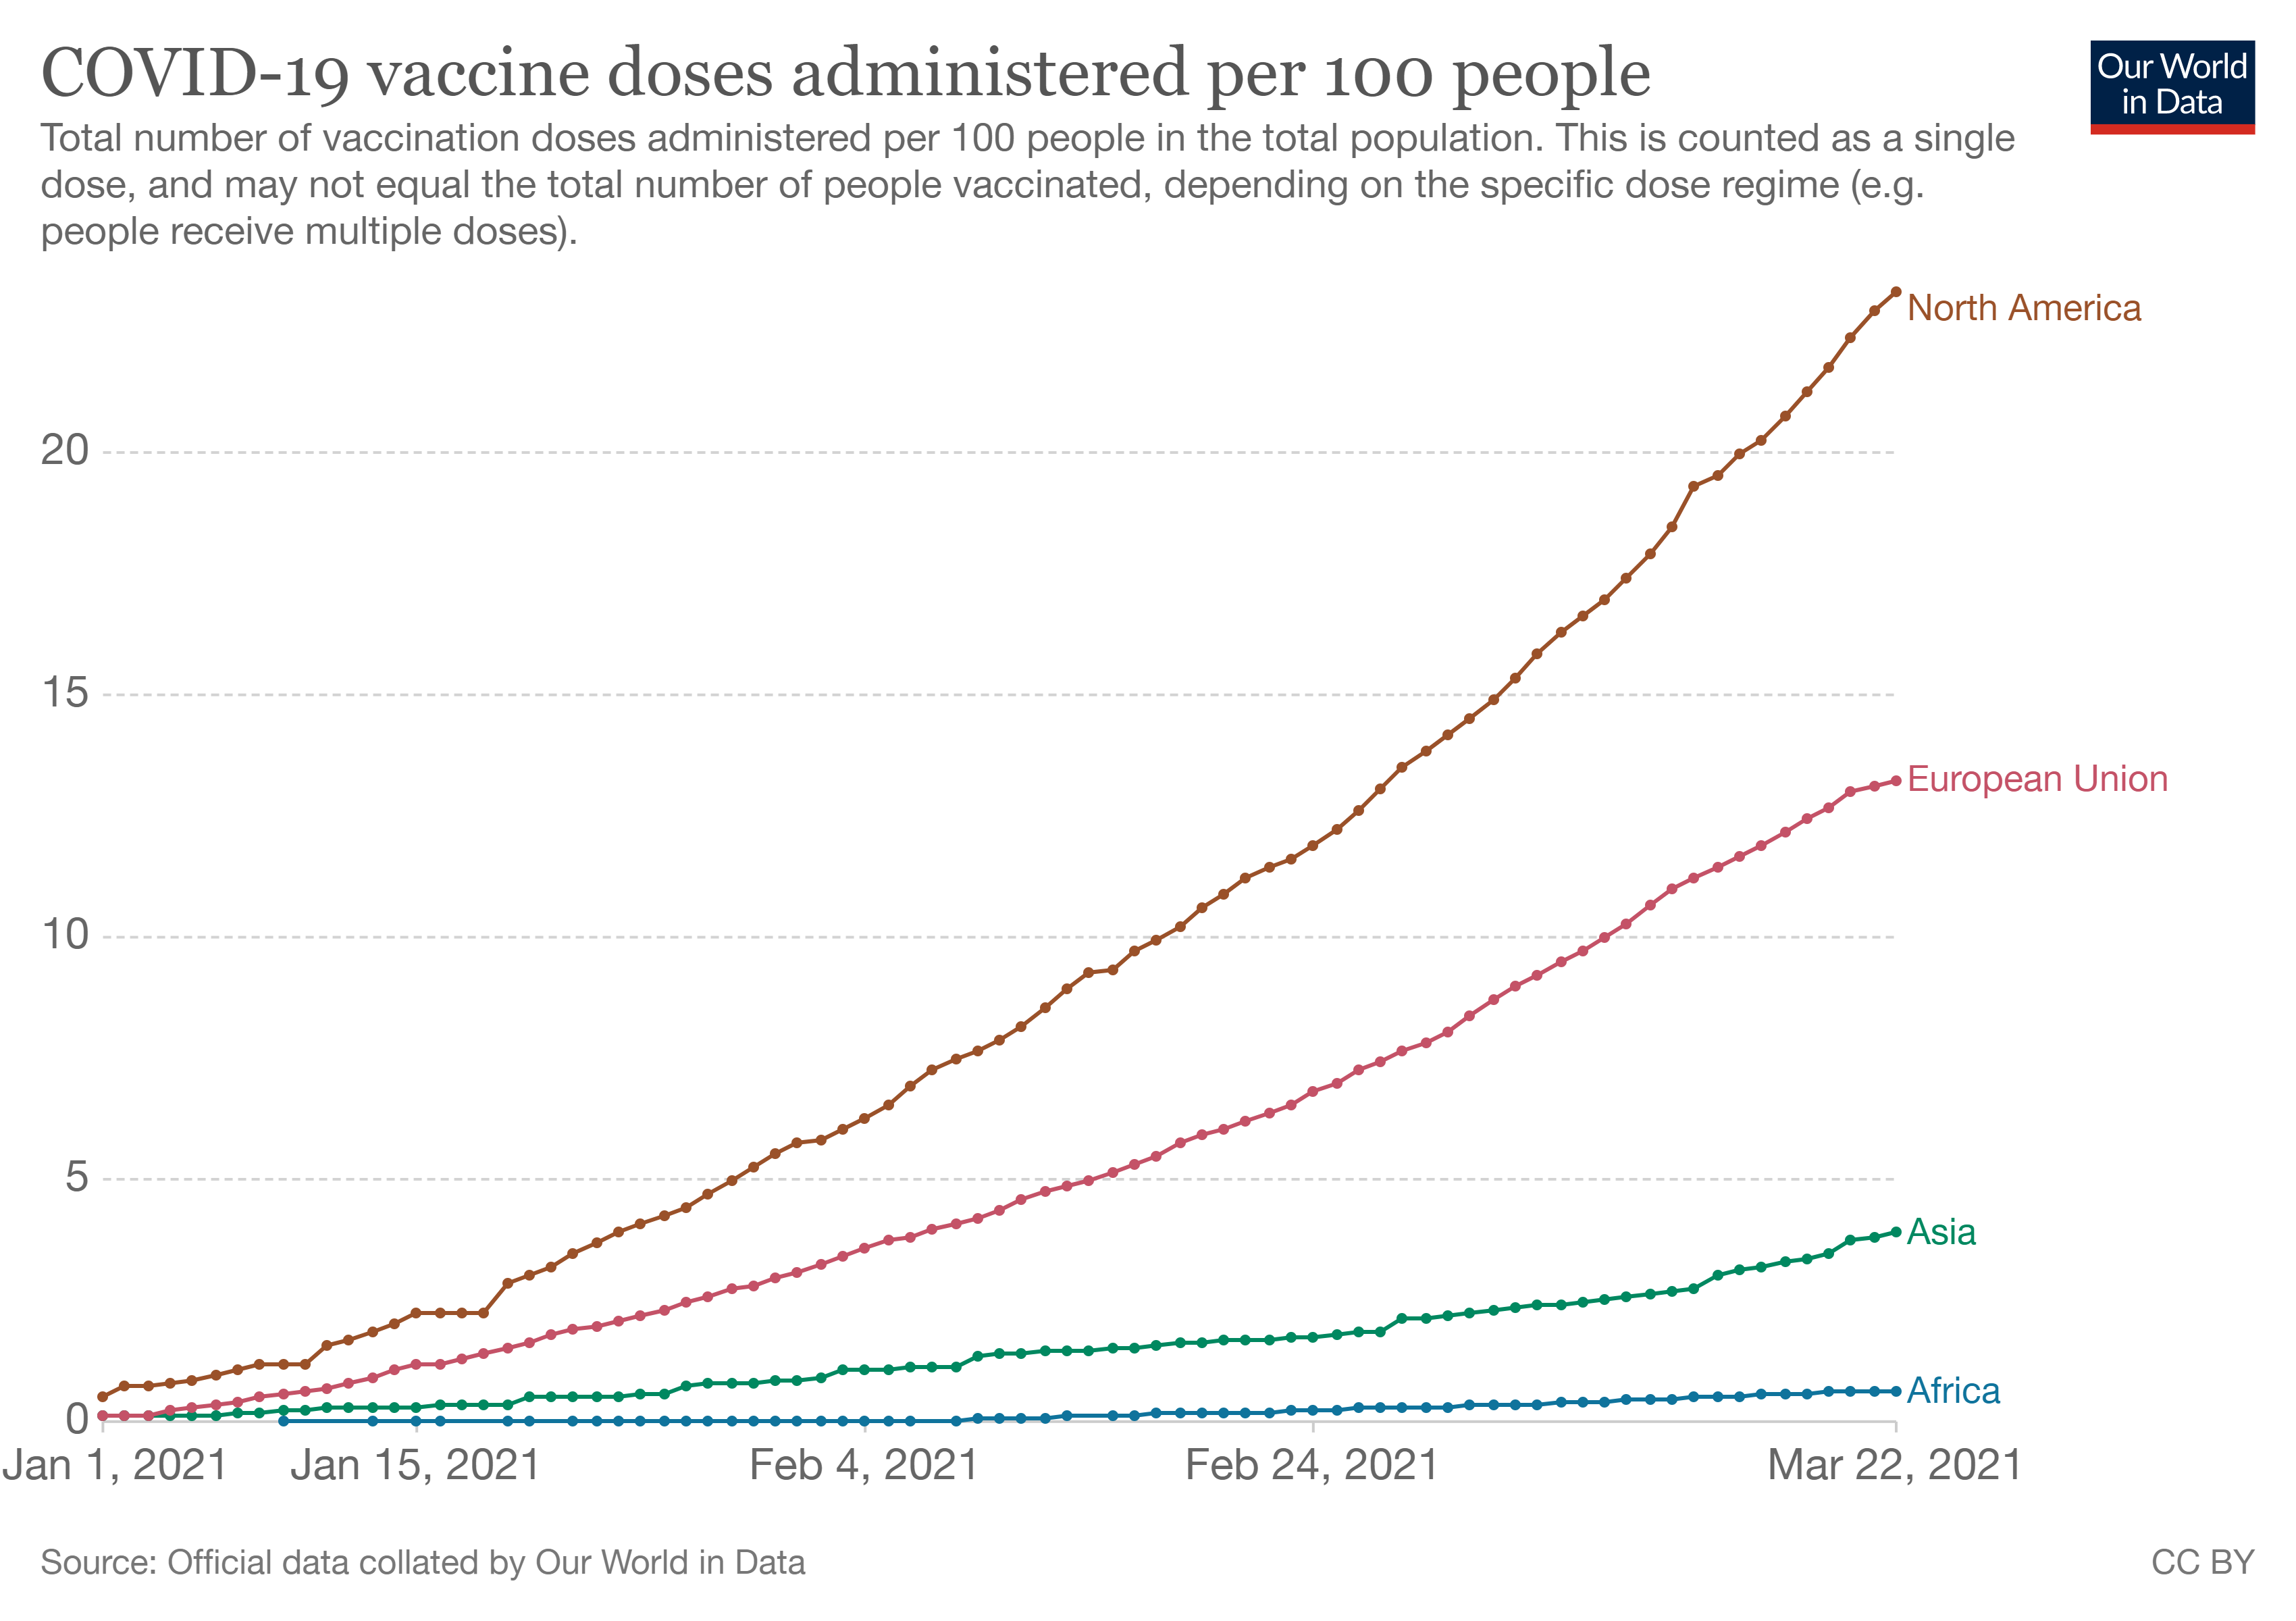 COVID-19 vaccines doses administered per 100 people.